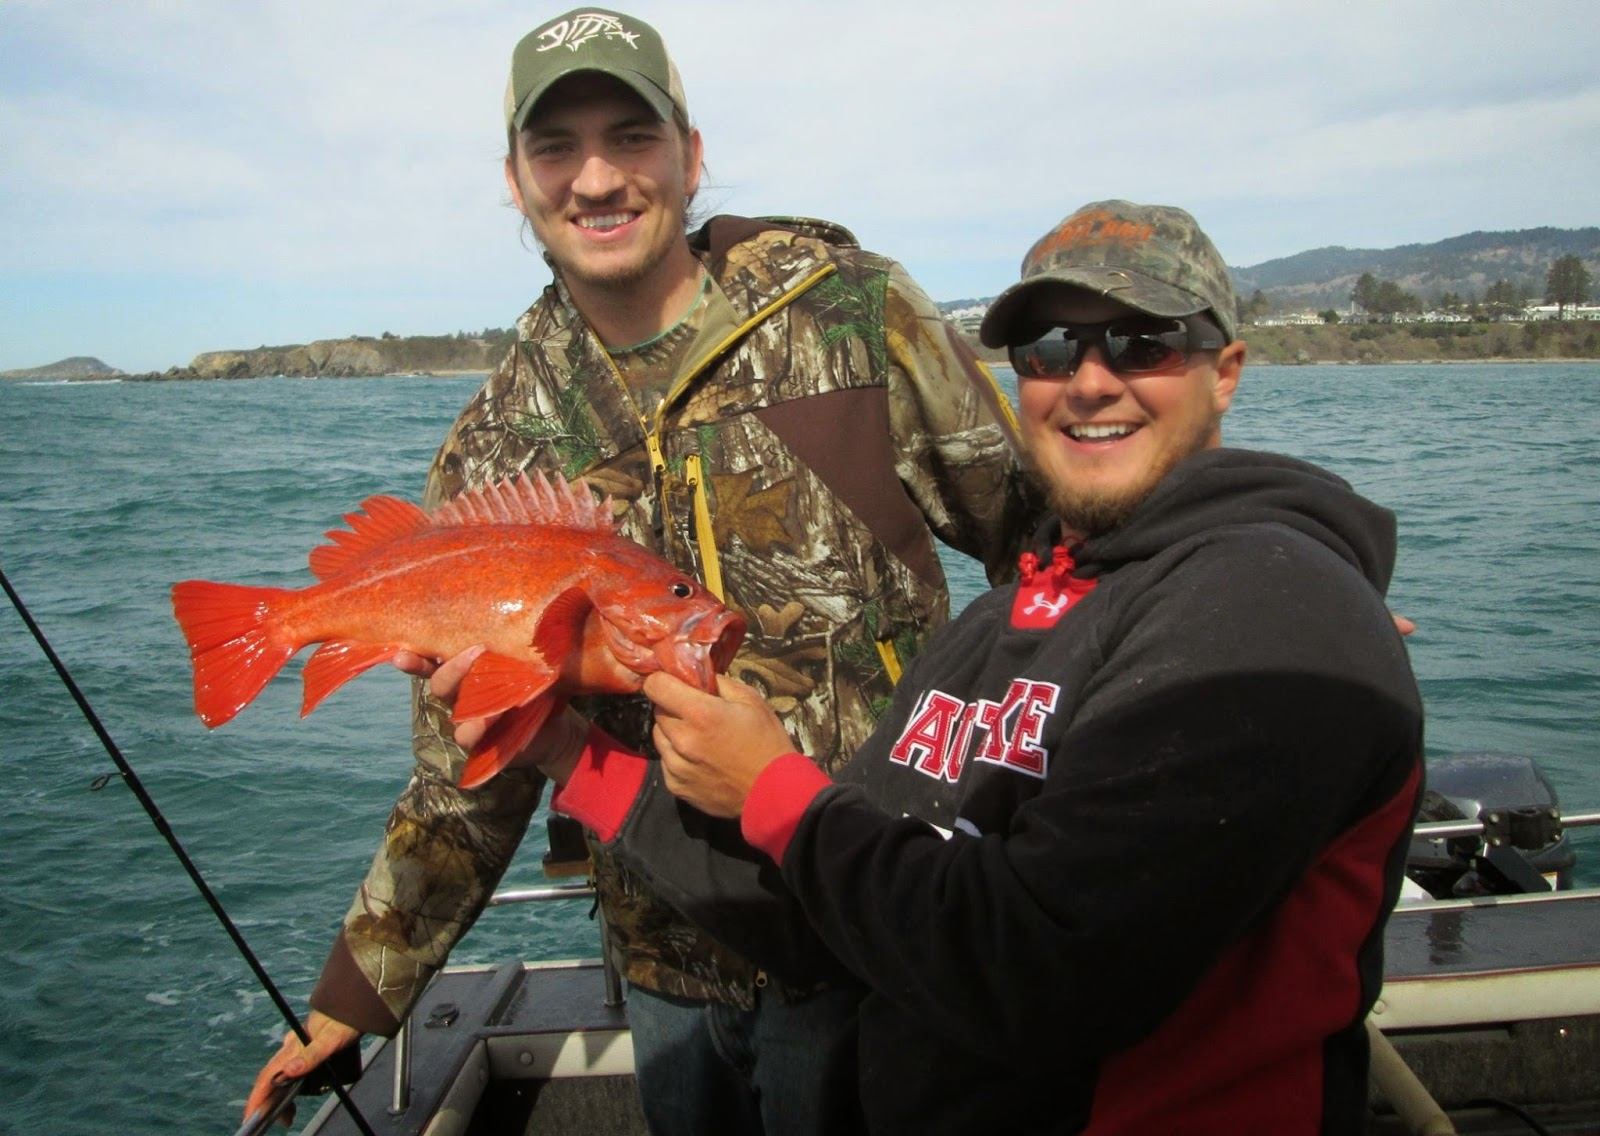 Brookings oregon fishing charters march 2015 for Brookings fishing charters